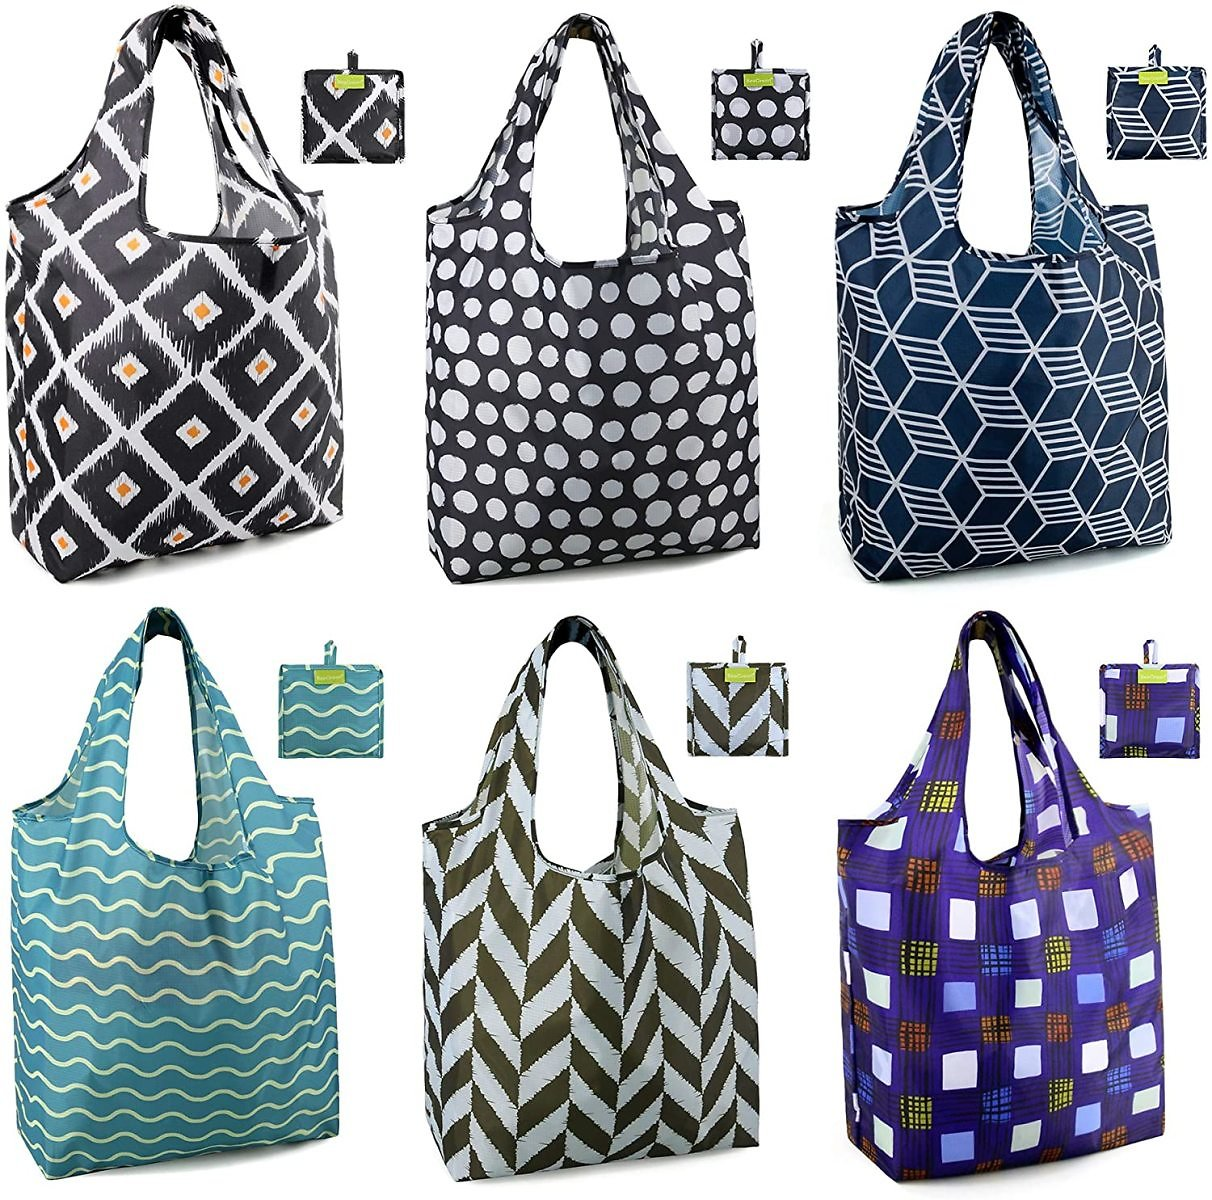 15% OFF | Shopping Bags Reusable Grocery Tote Bags 6 Pack XLarge 50LBS